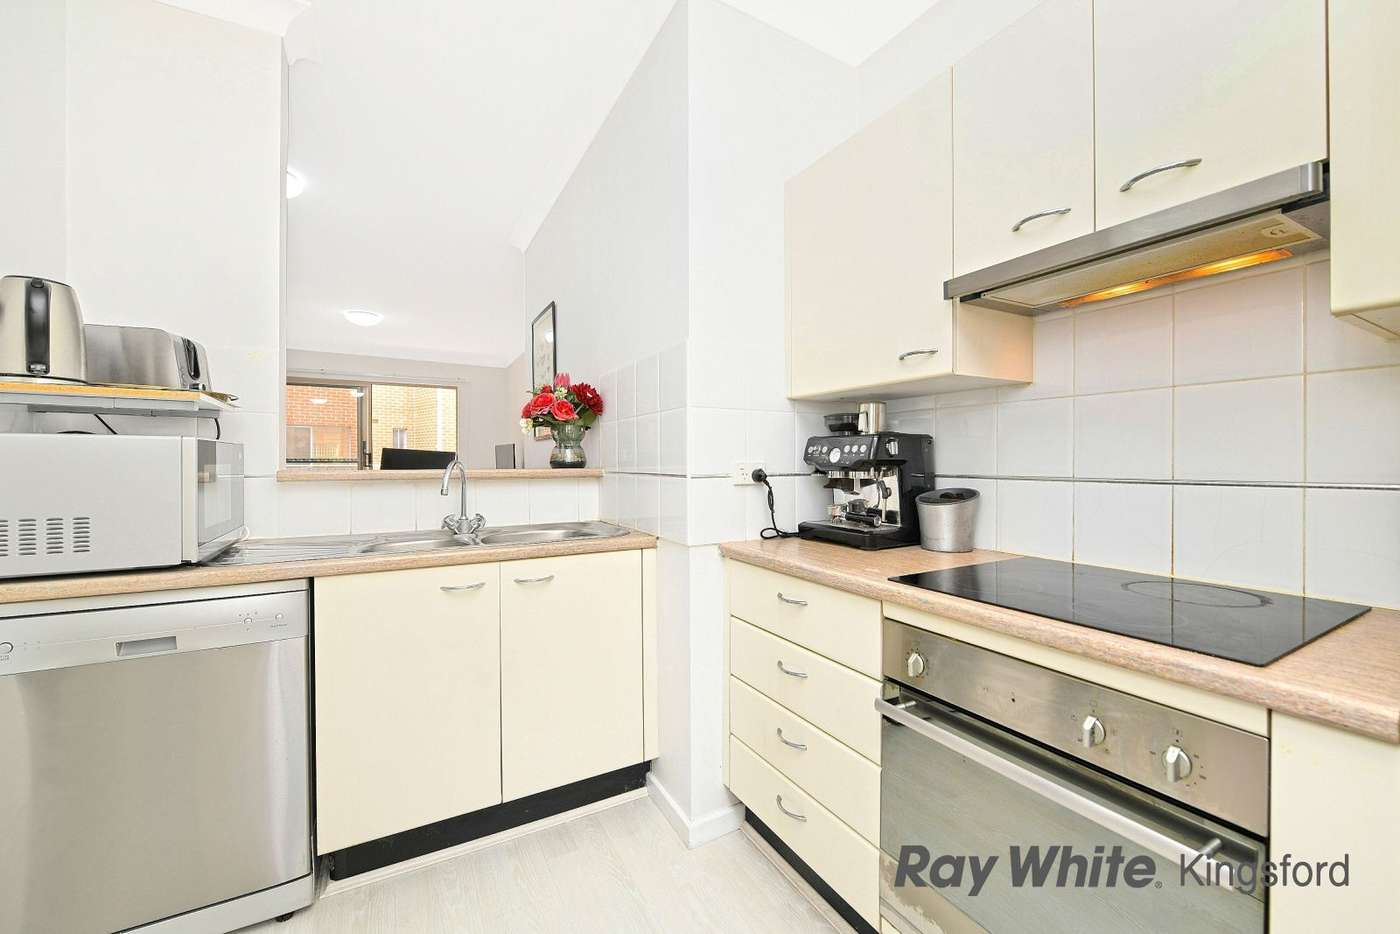 Fifth view of Homely apartment listing, 8/50-52 Anzac Parade, Kensington NSW 2033